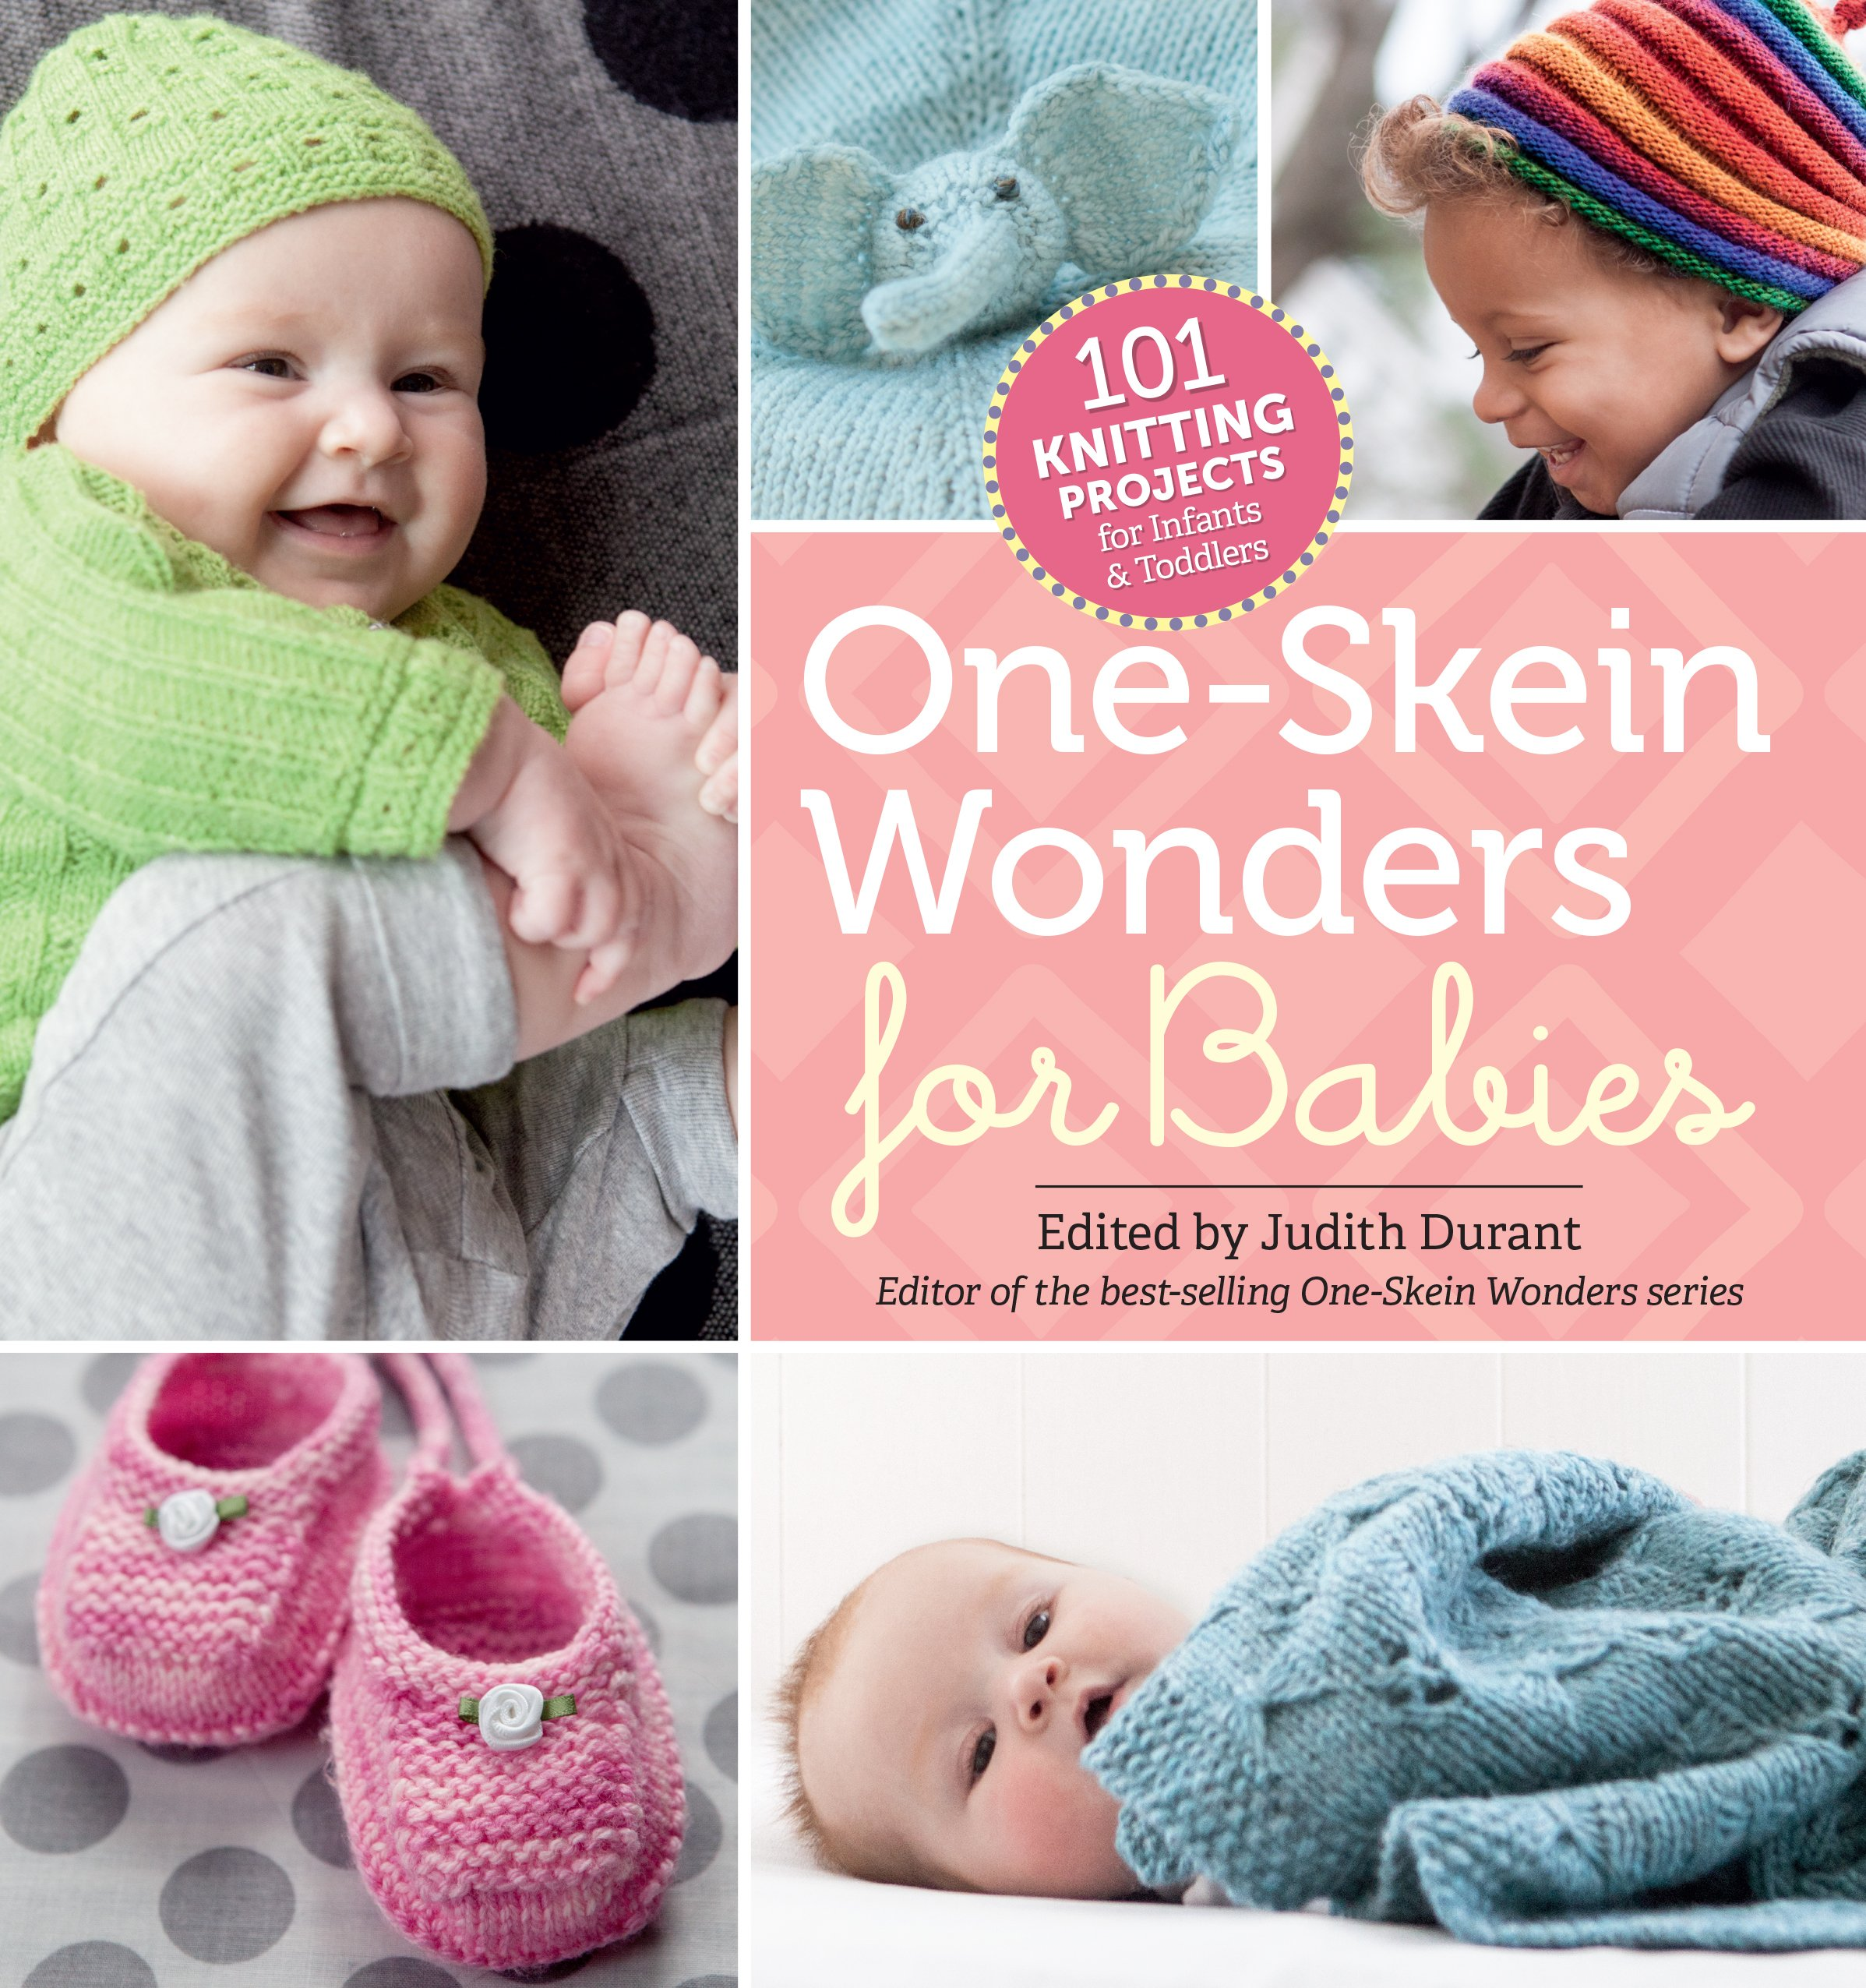 One Skein Wonders Babies Knitting Projects product image